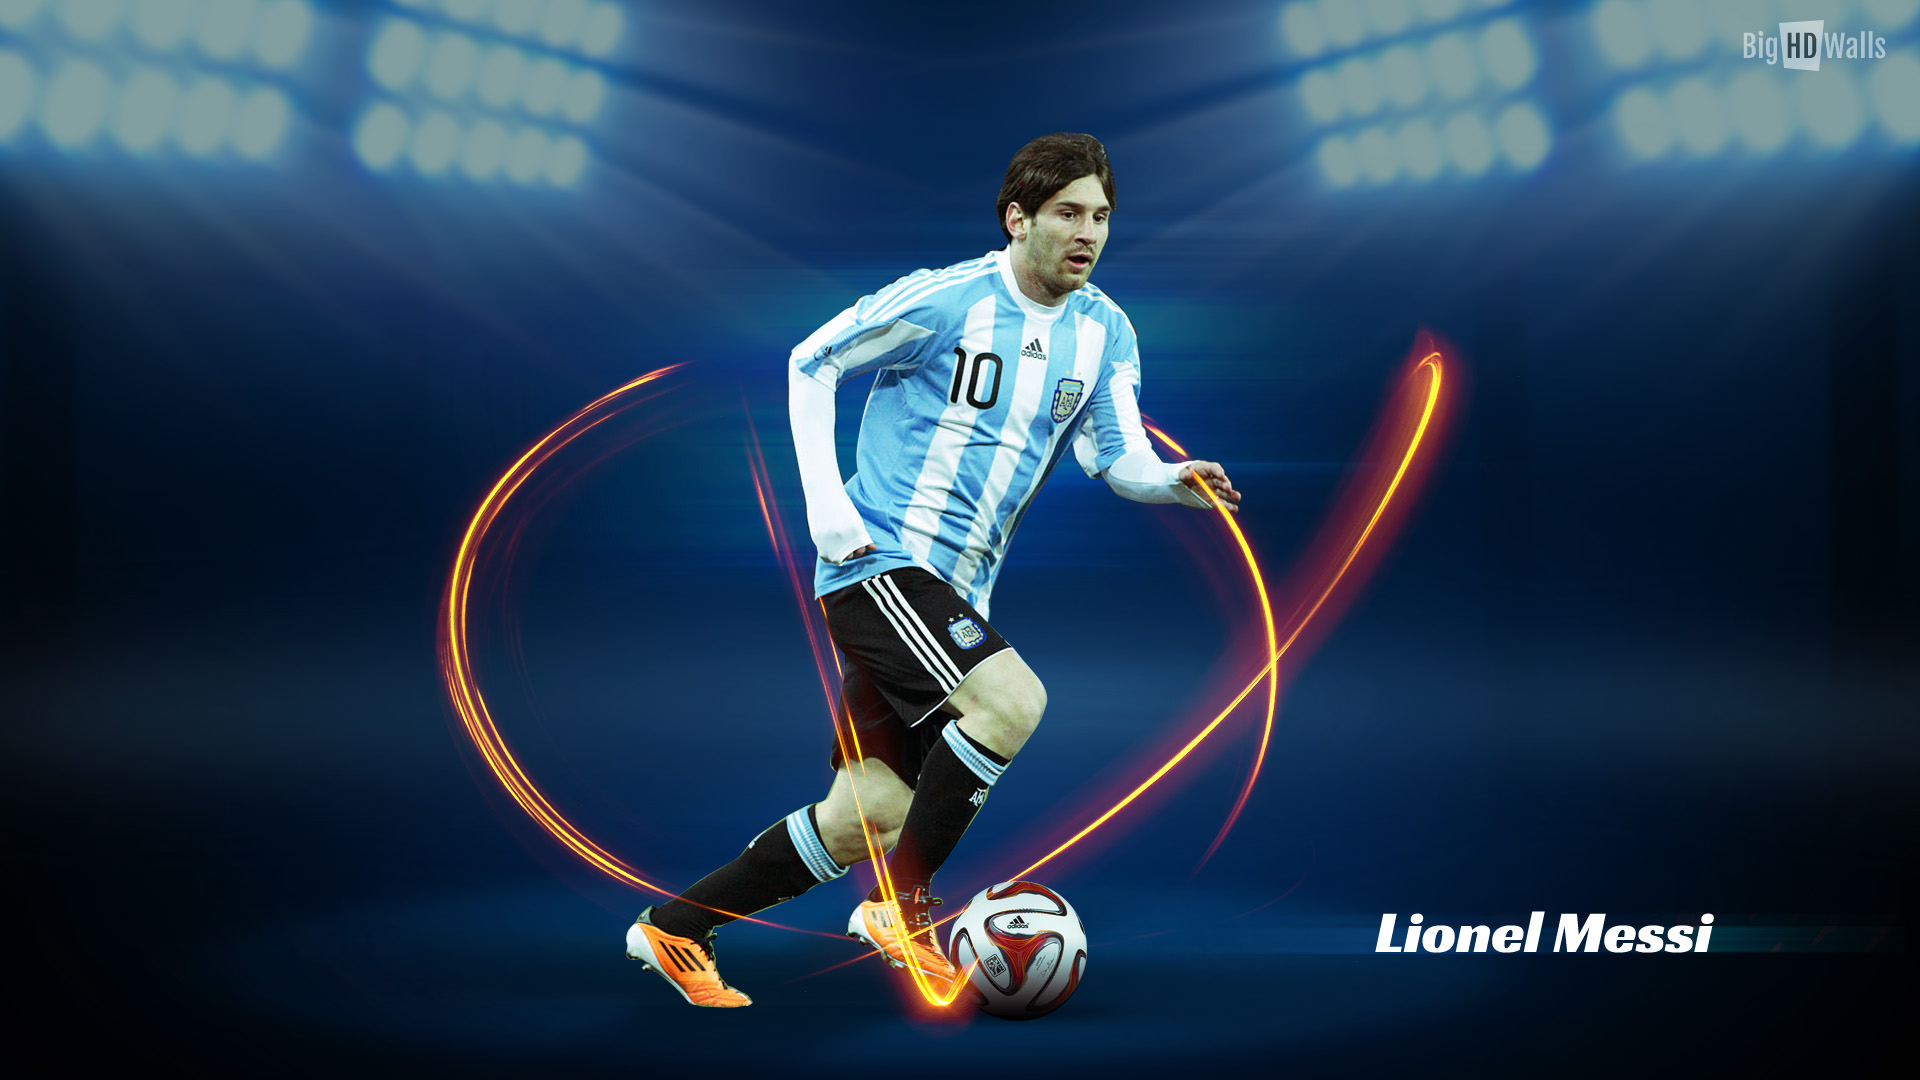 fonds d'écran messi lionel : tous les wallpapers messi lionel